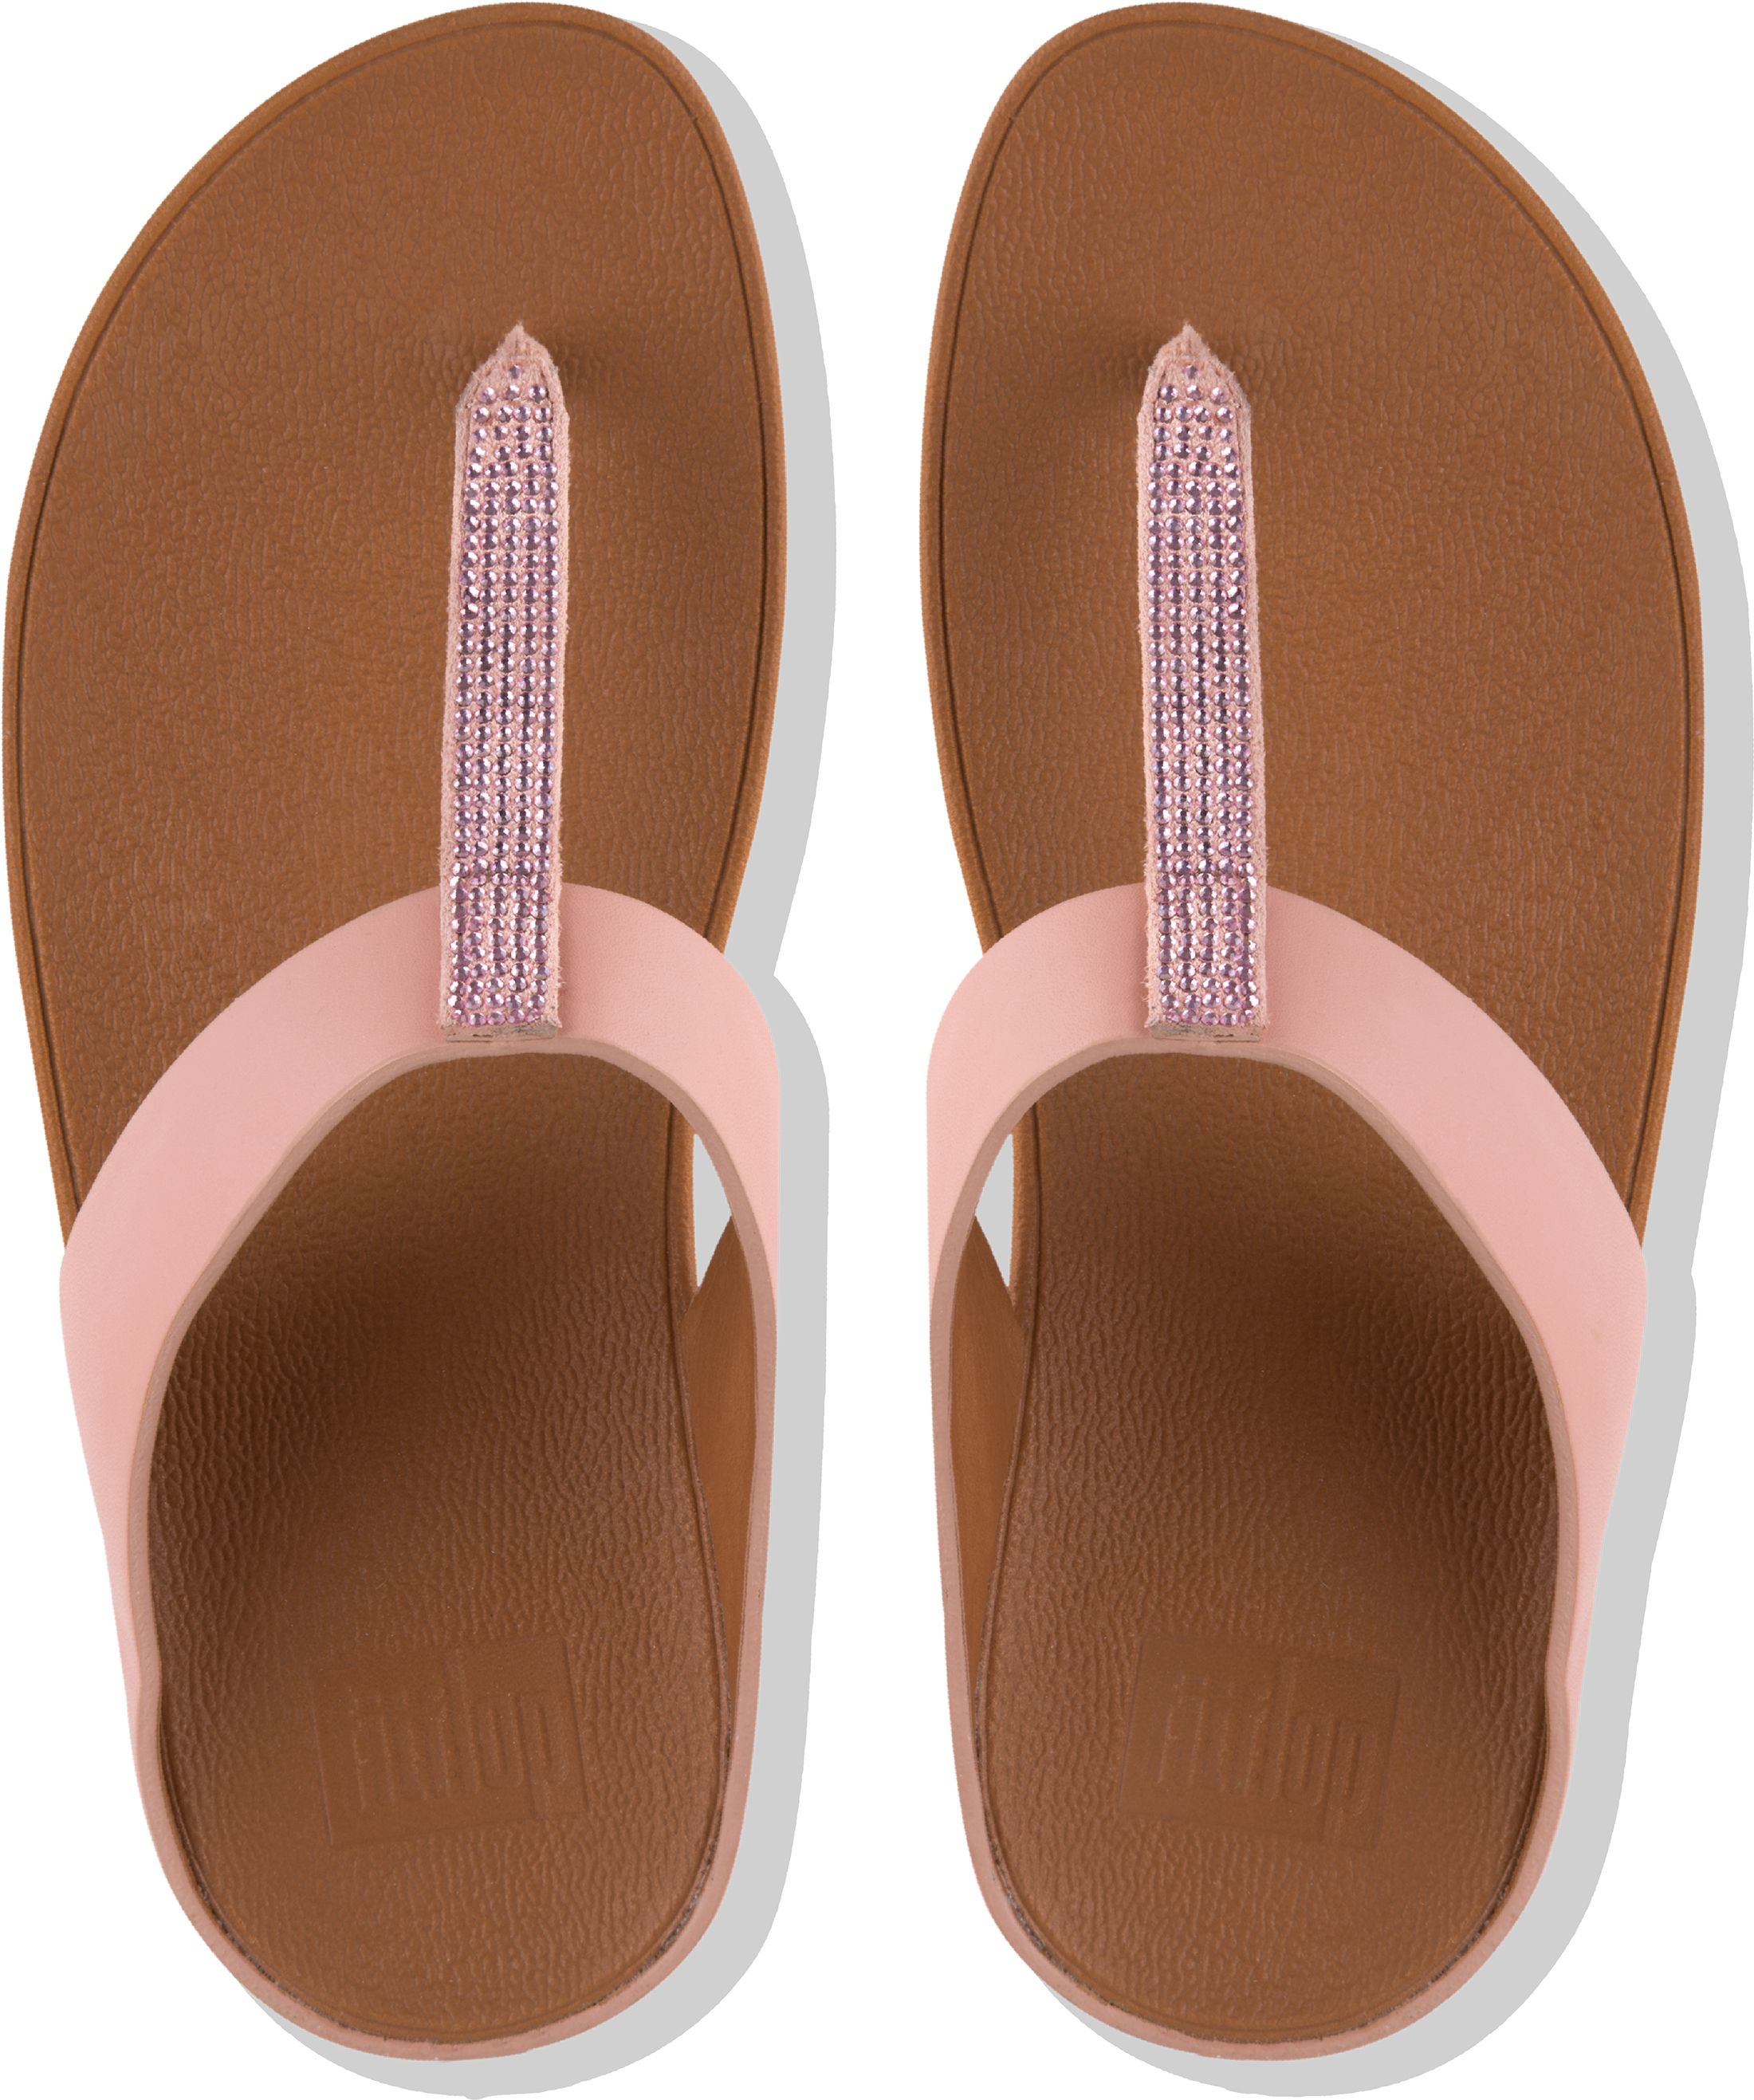 220609026 FitFlop Women s FINO Toe-post Flip Flops Crystal Embellished Strap Uk5  Dusty Pink. About this product. Picture 1 of 4  Picture 2 of 4  Picture 3  of 4 ...